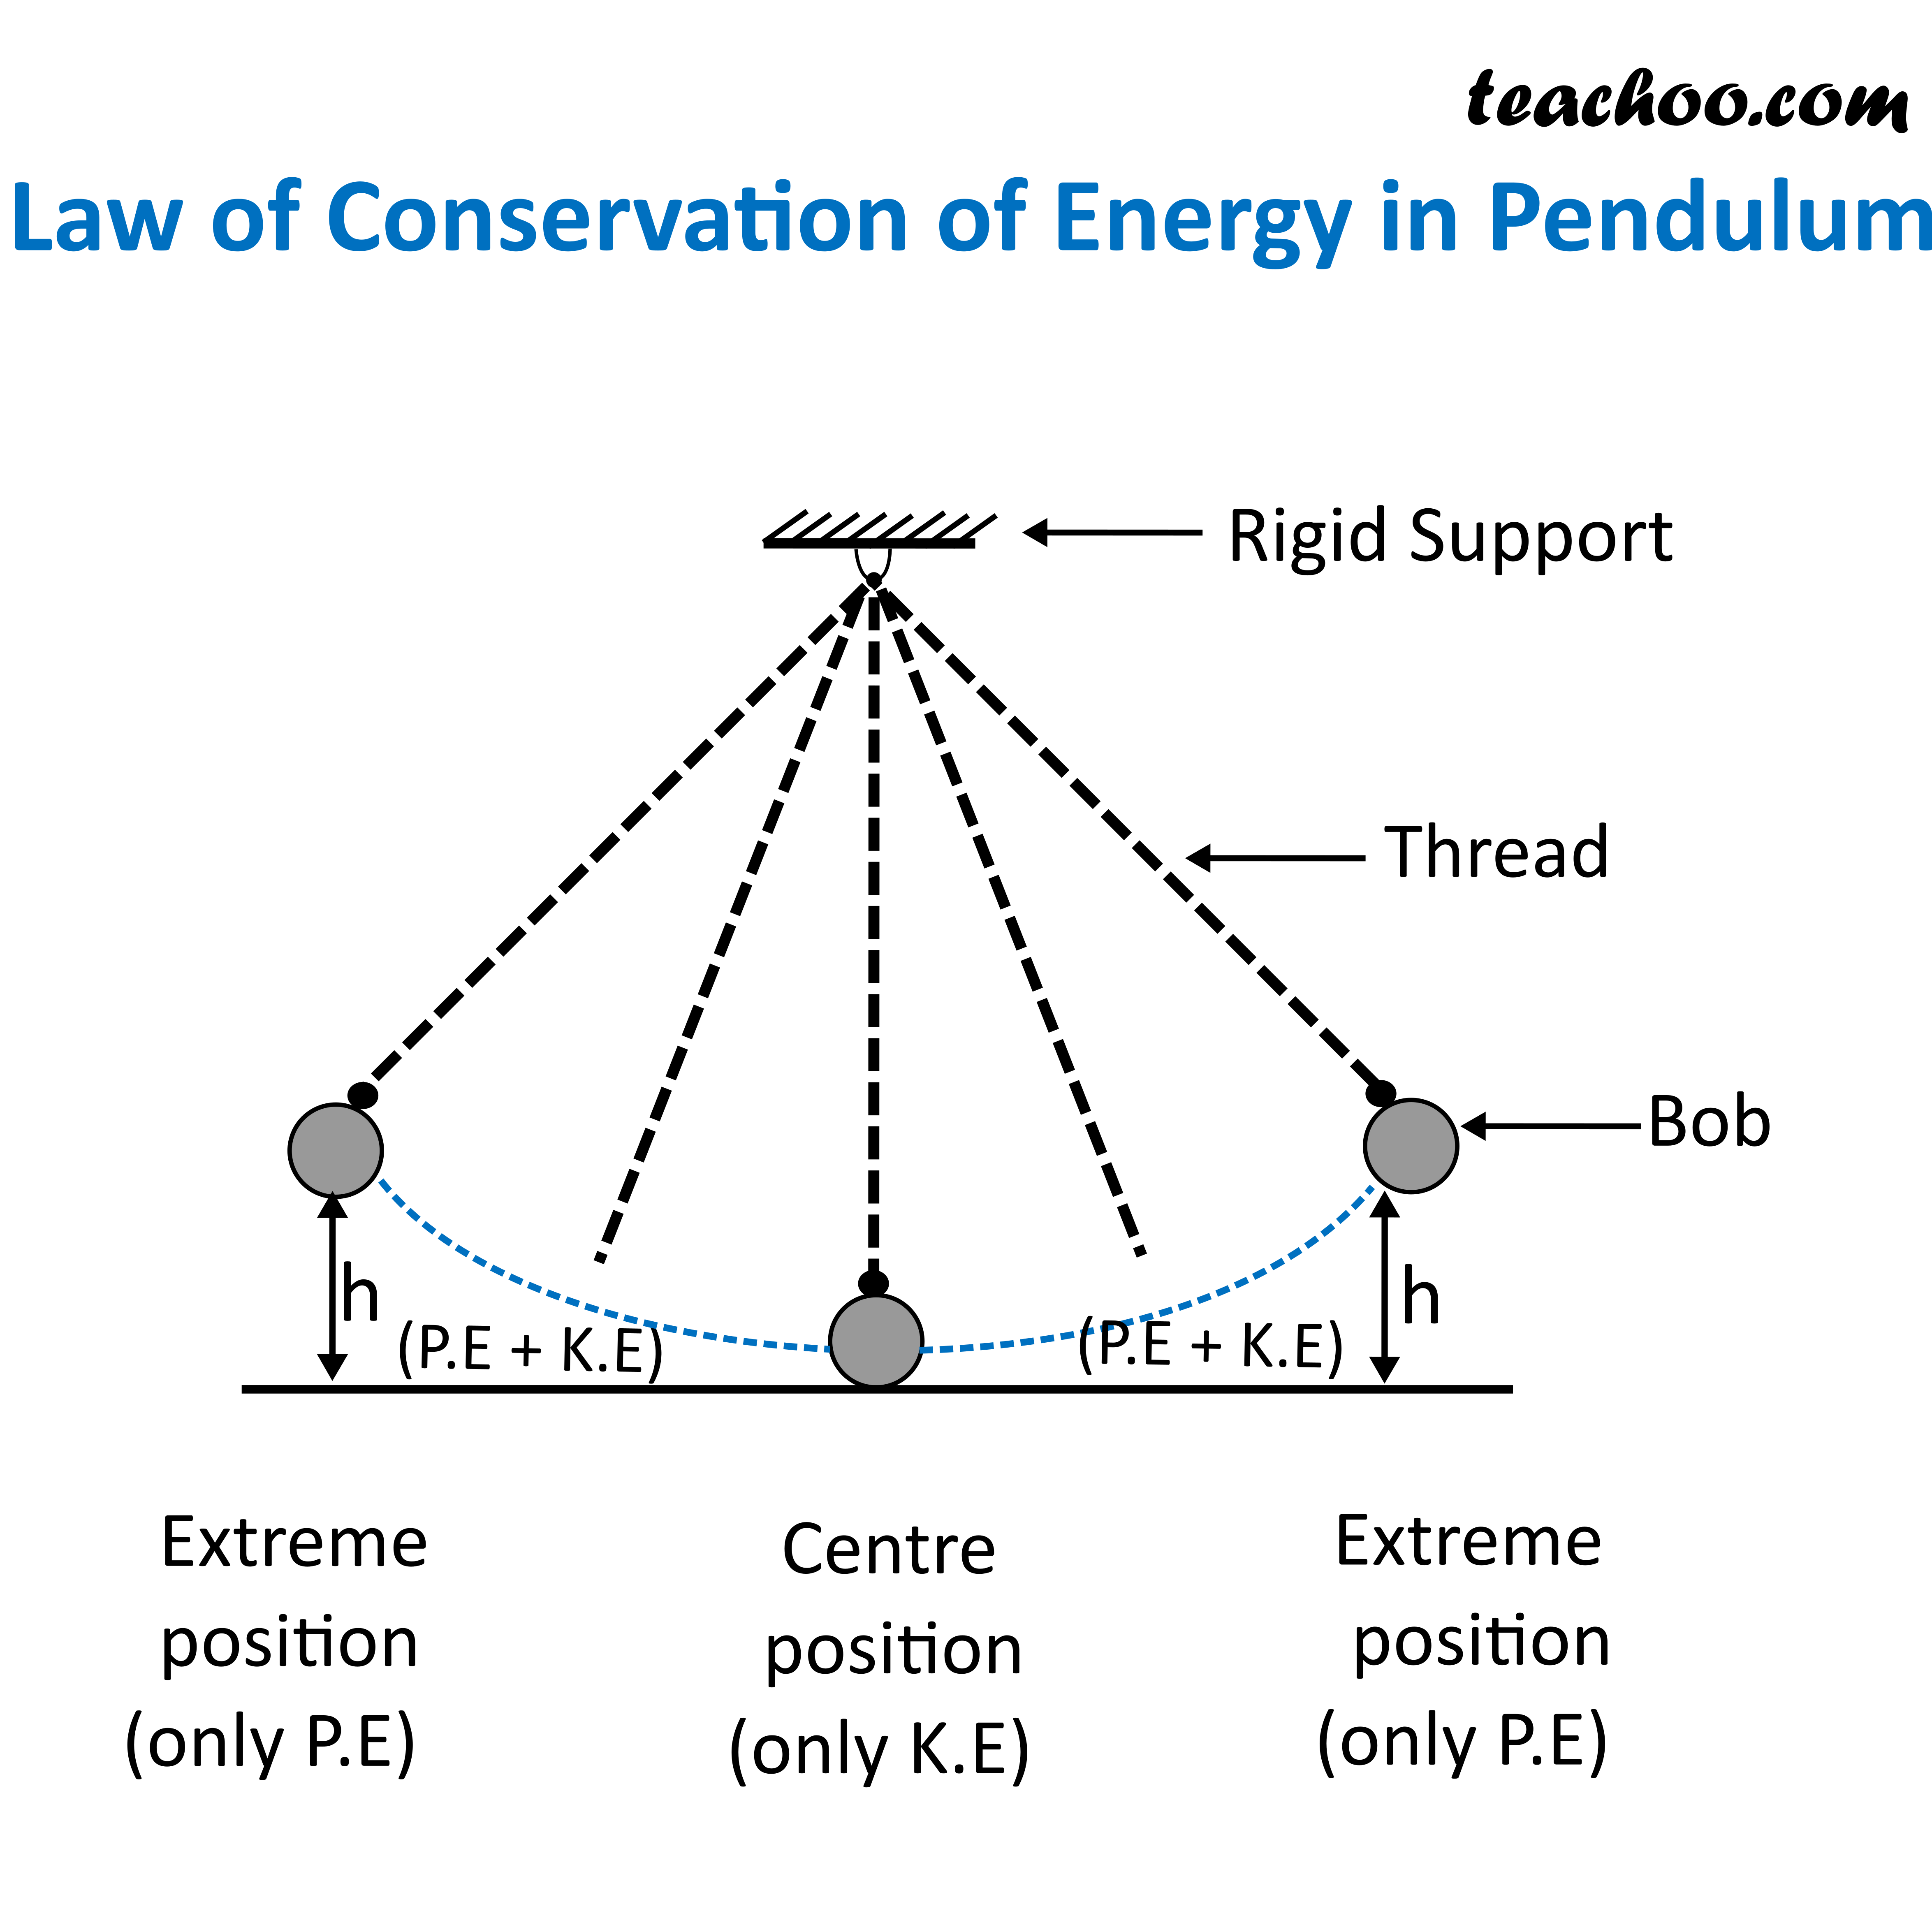 Law of Conservation of Energy in Pendulum.png